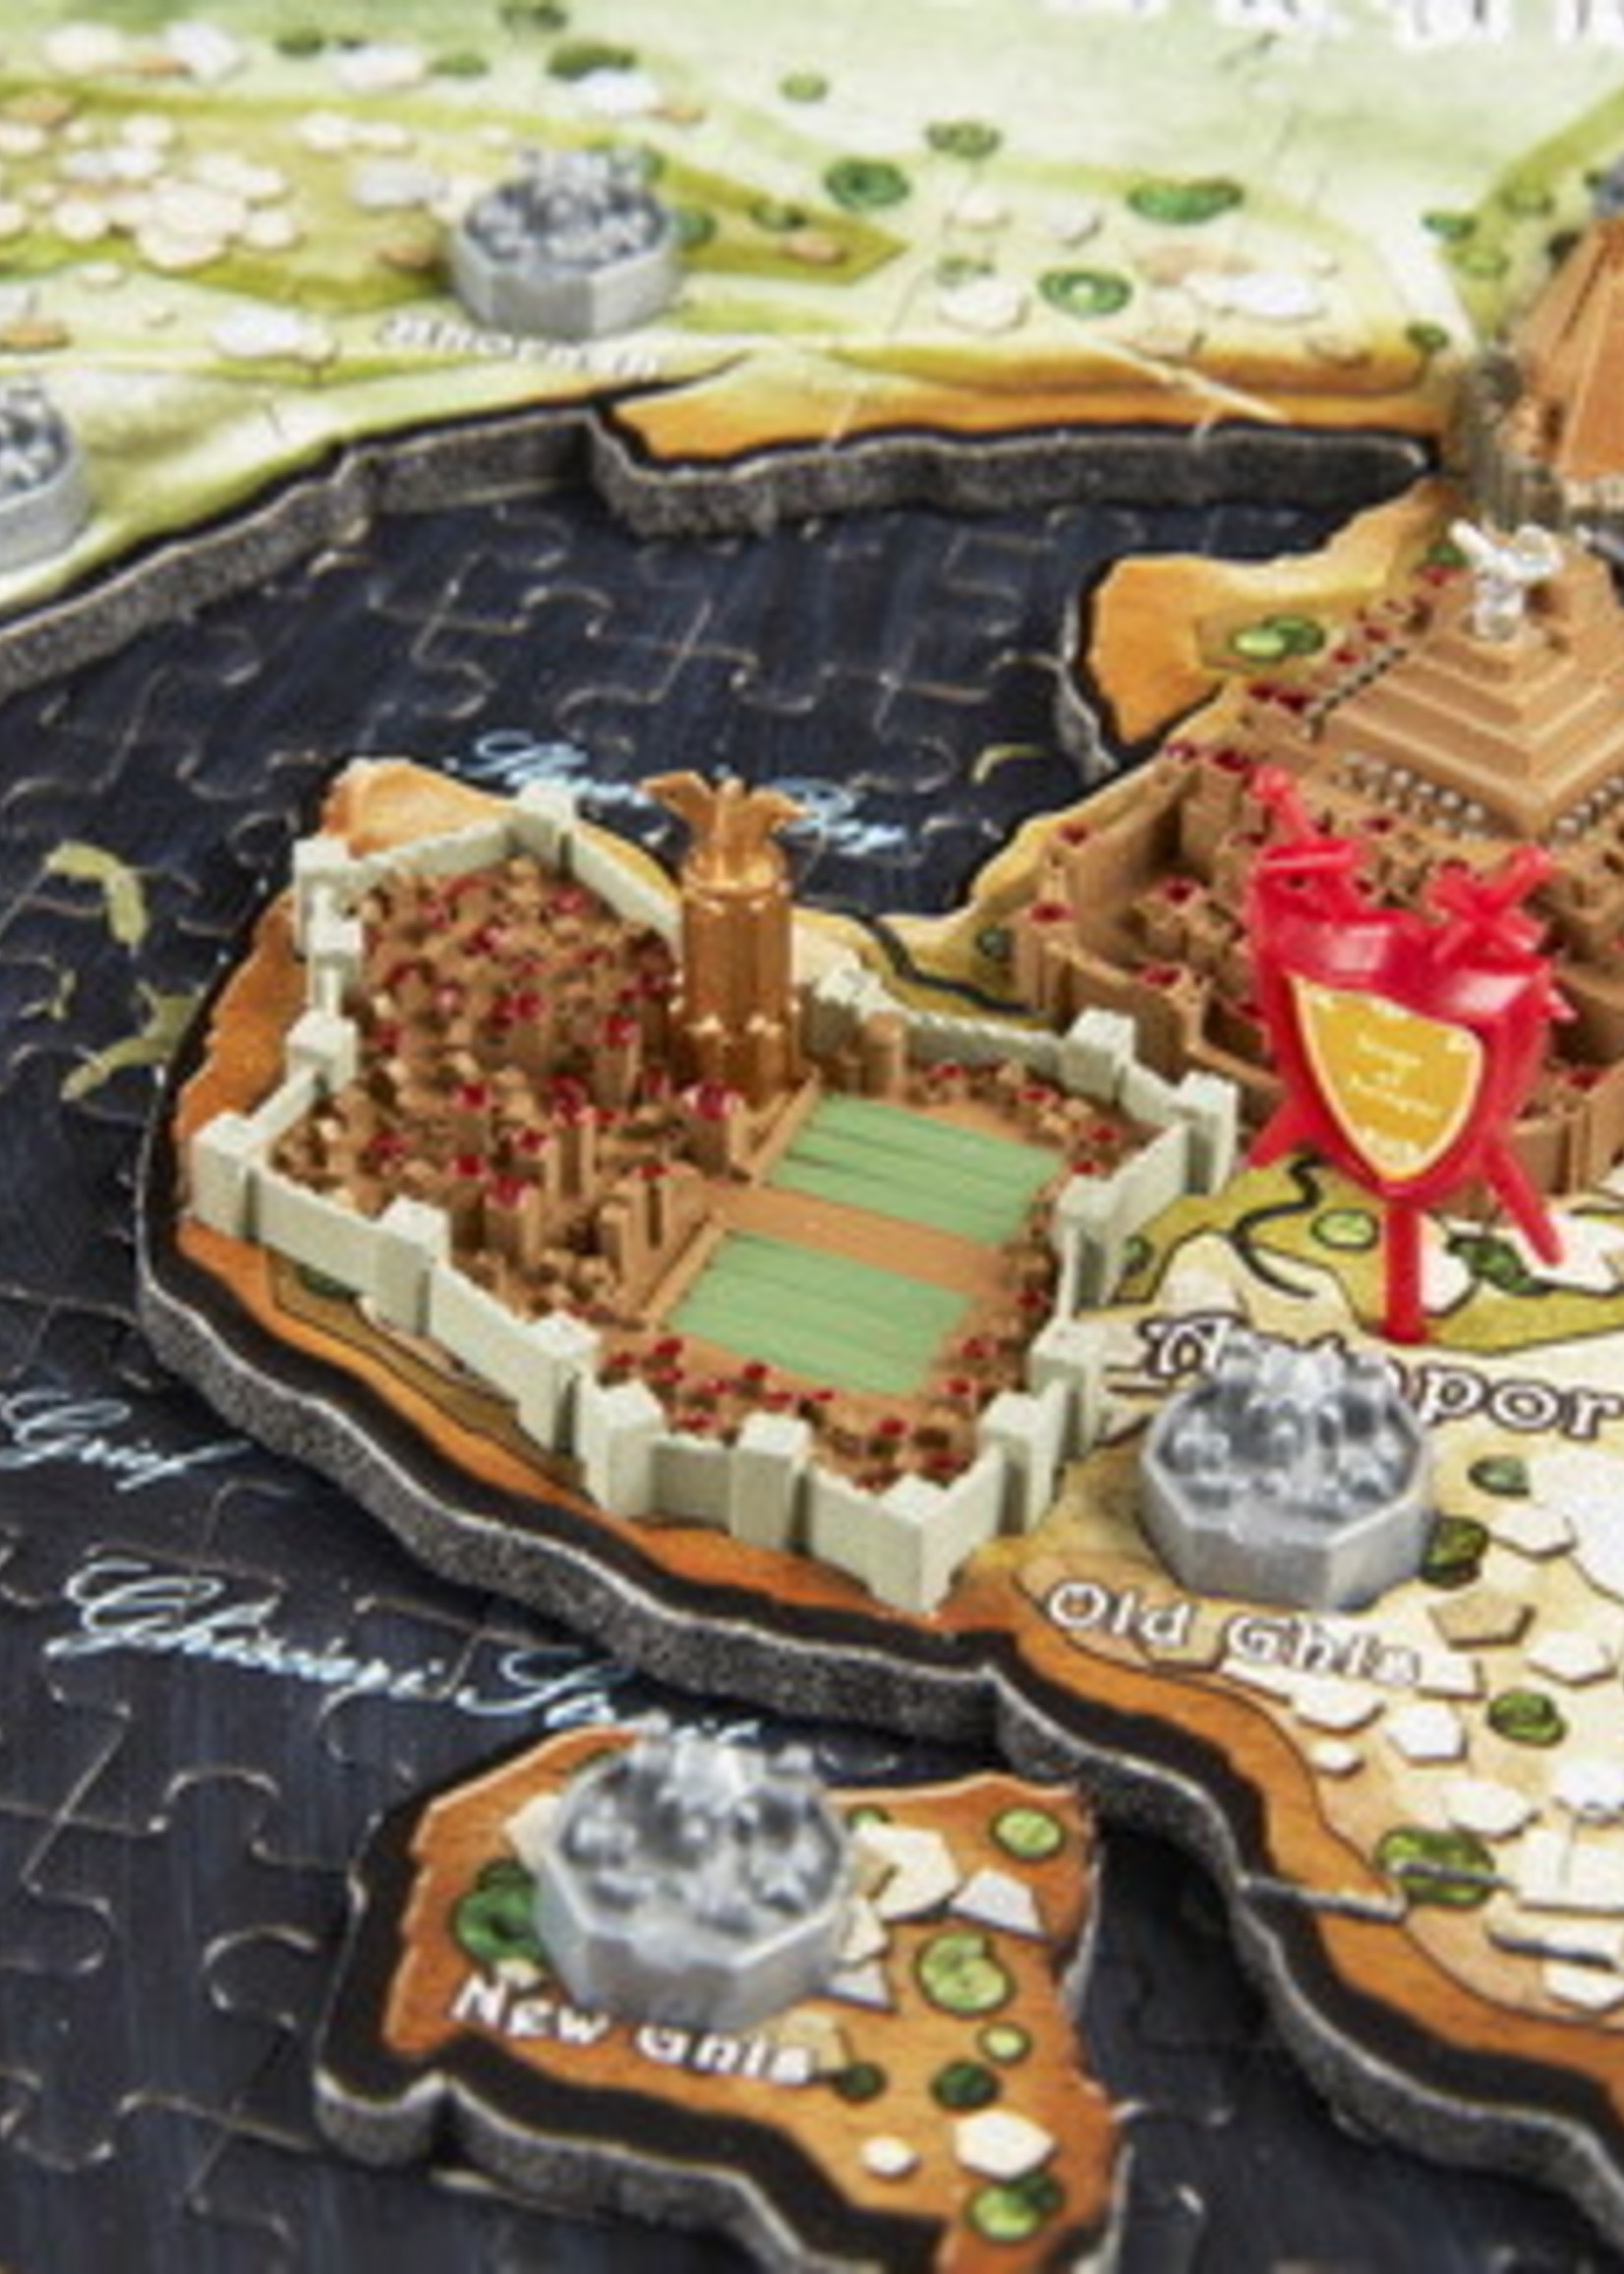 Cityscapes Puzzles 4D Cityscape Puzzles - Game of Thrones: Essos